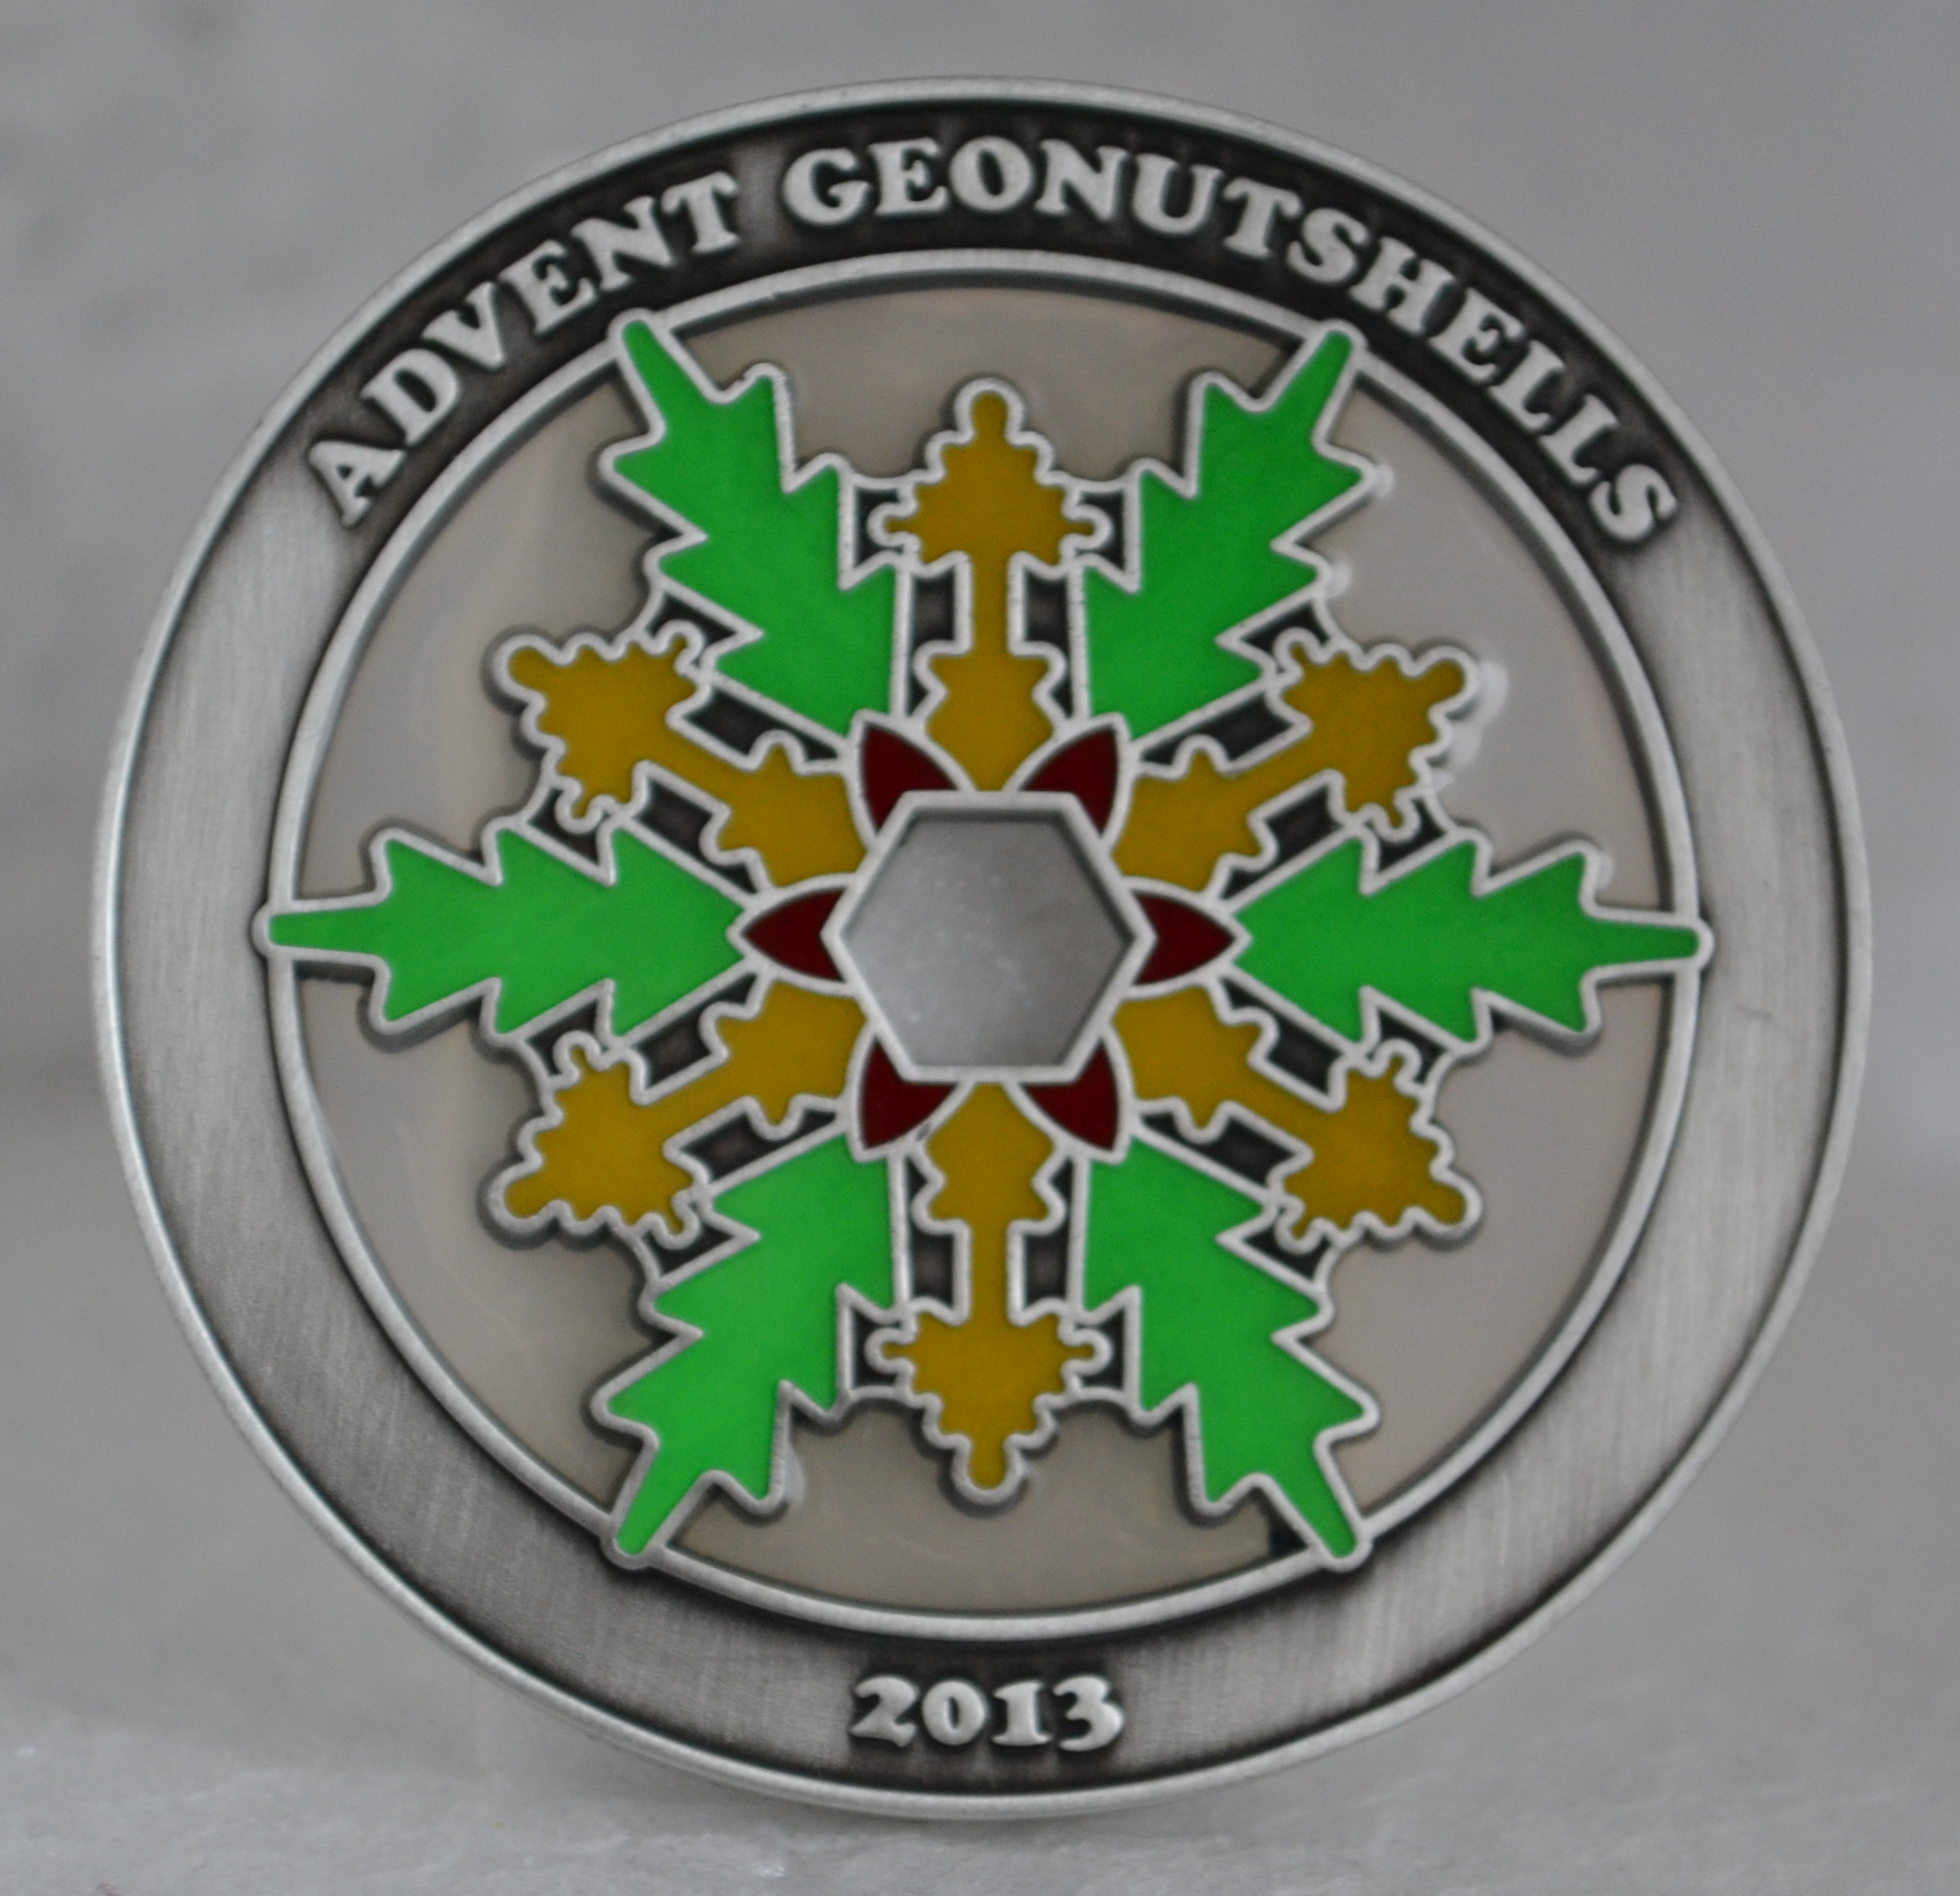 Advent Geonutshells 2013 Geocoin LE